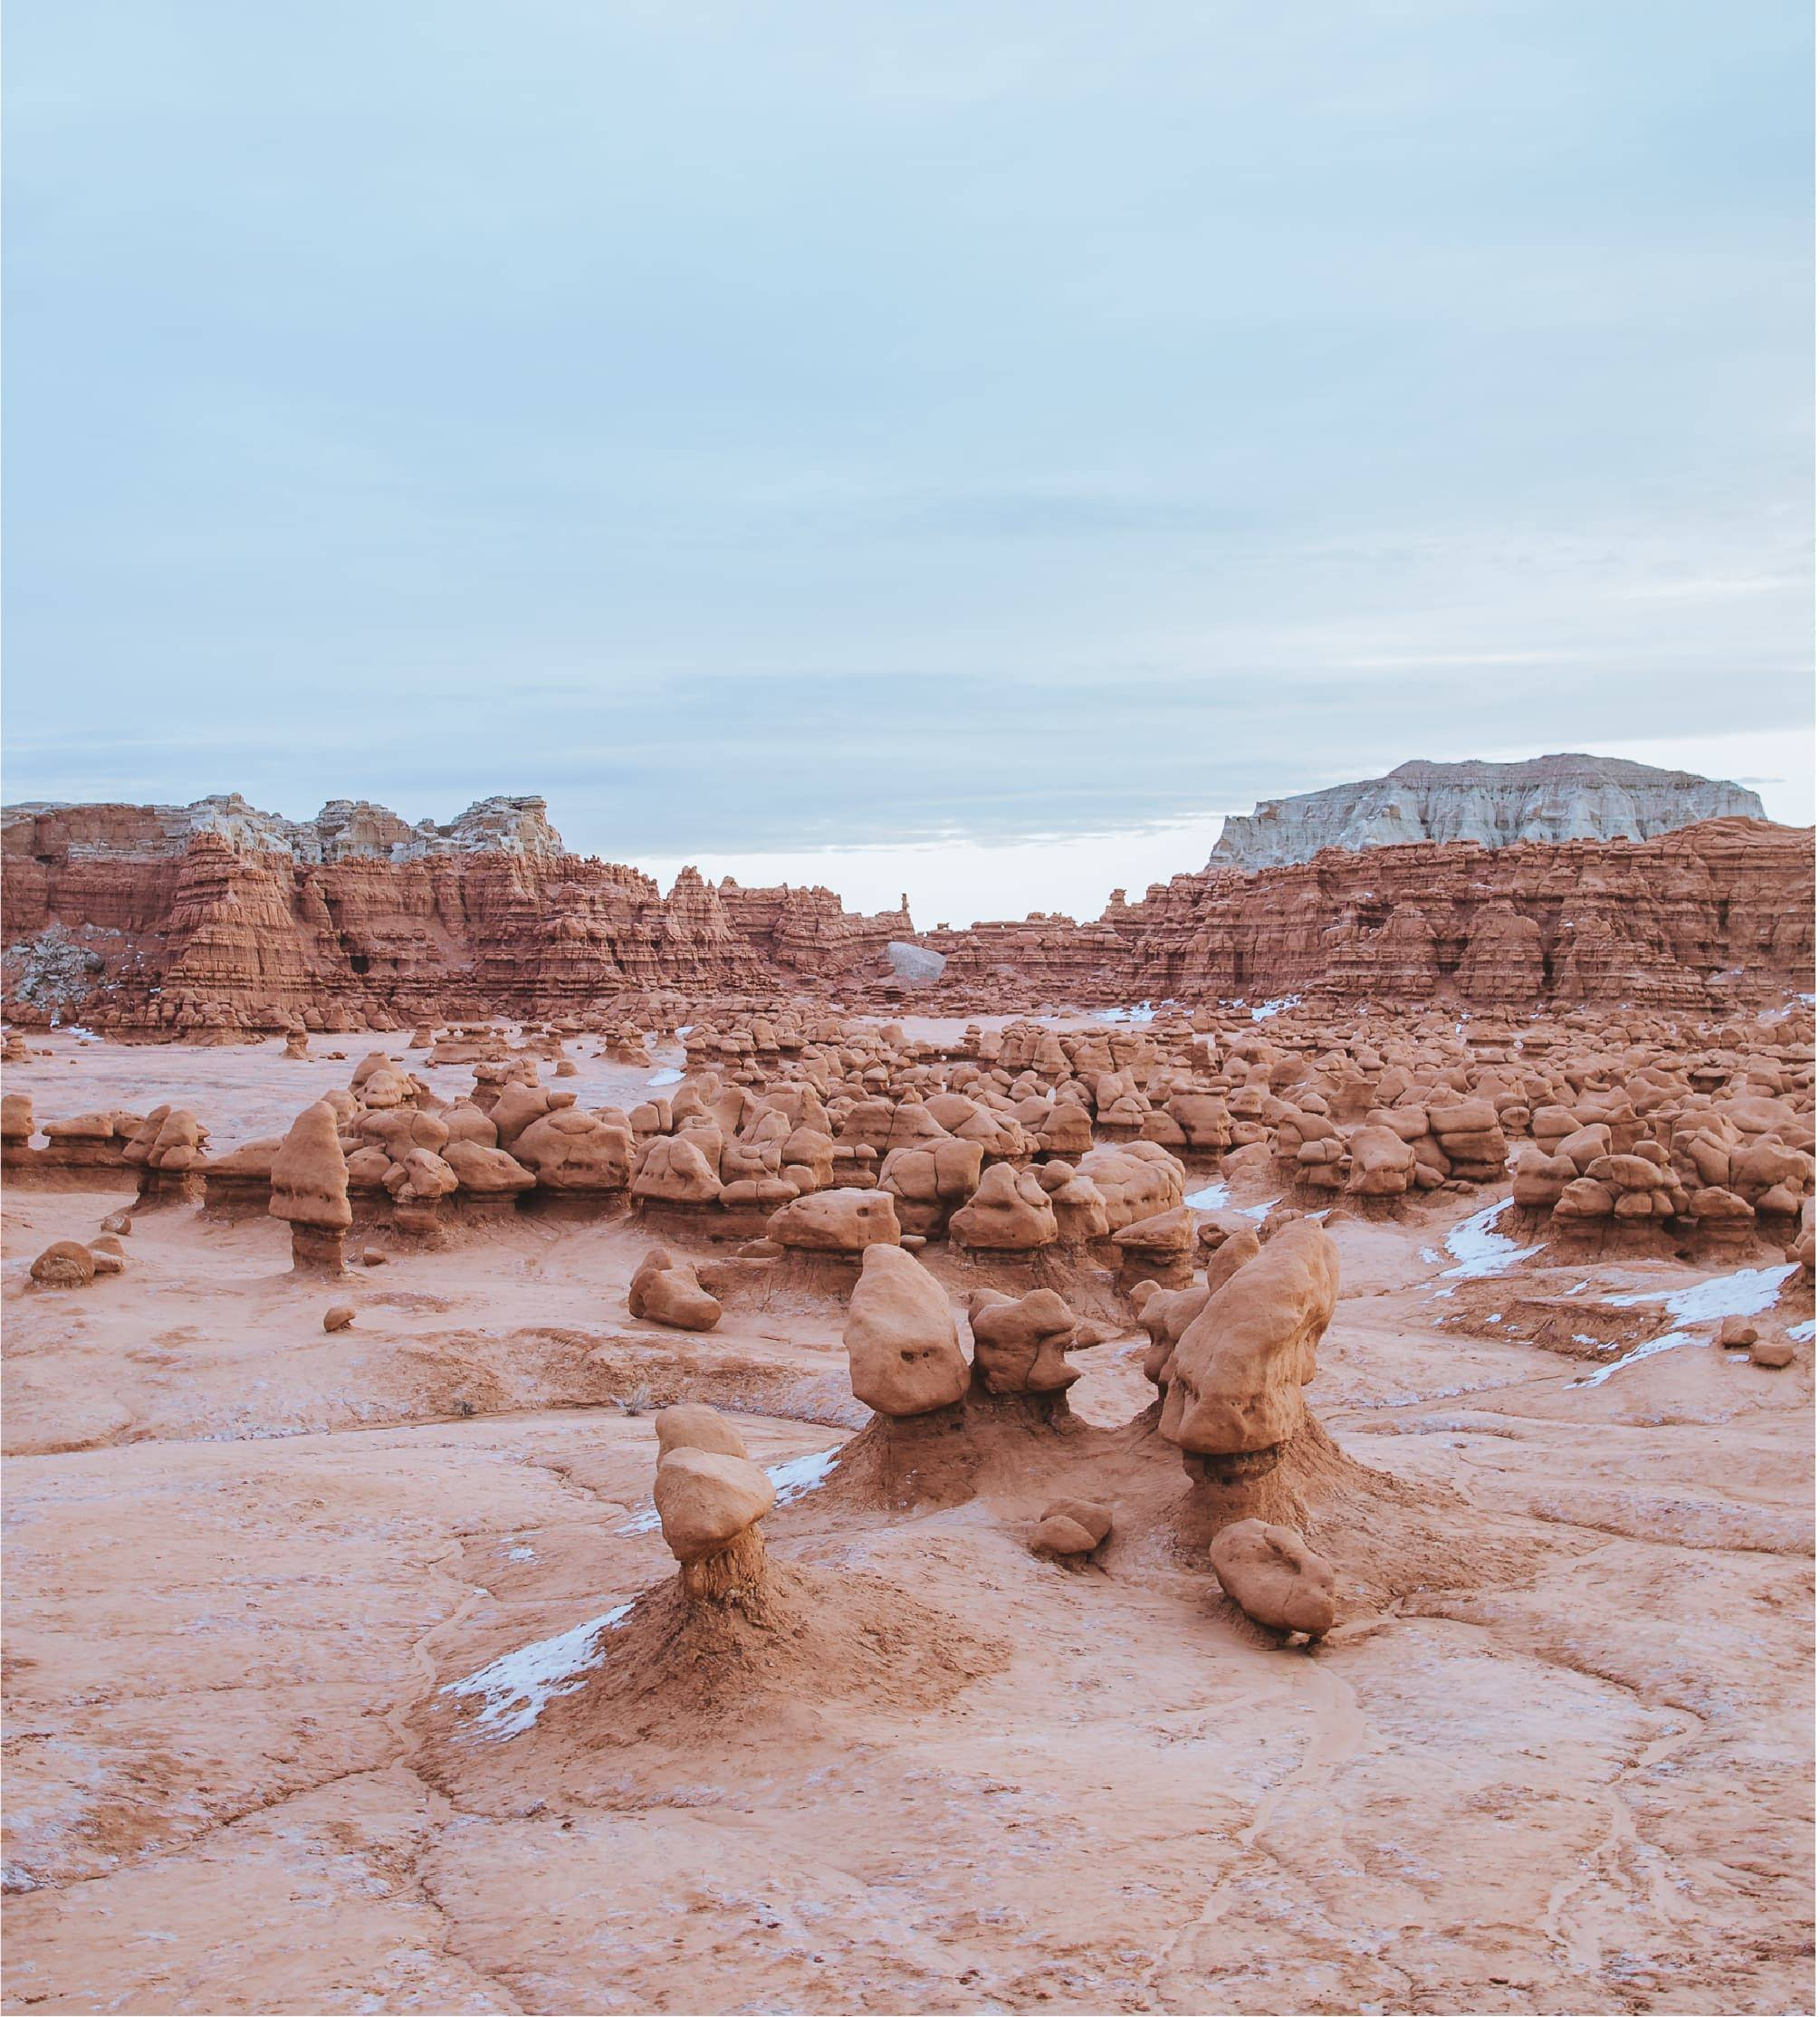 view of the hoodoos in Goblin valley